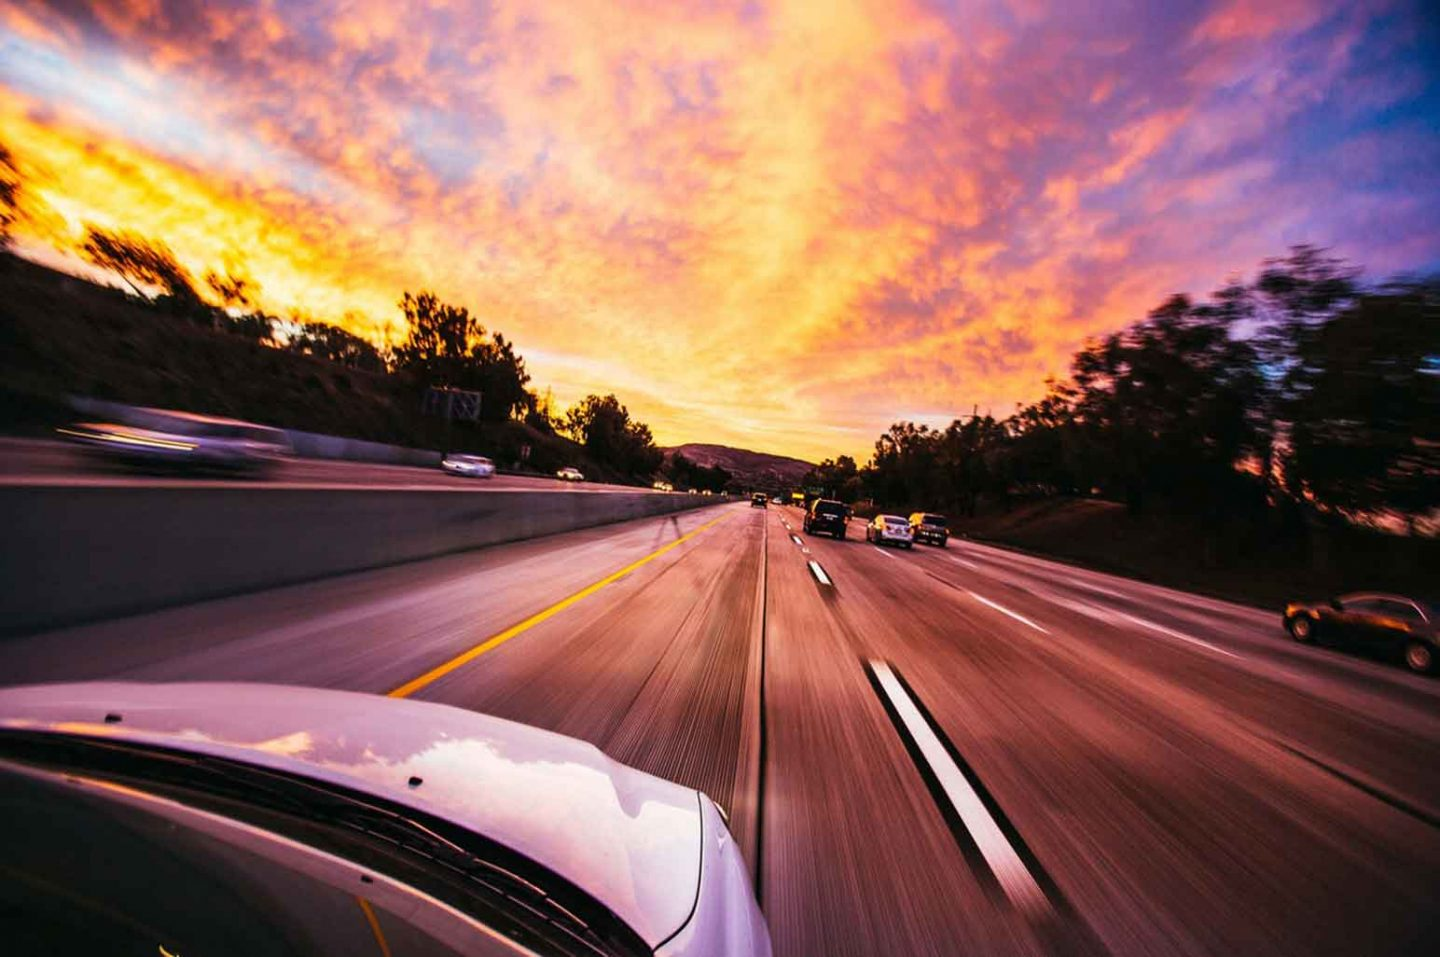 How to Drive More Mindfully and Prevent Road Mishaps